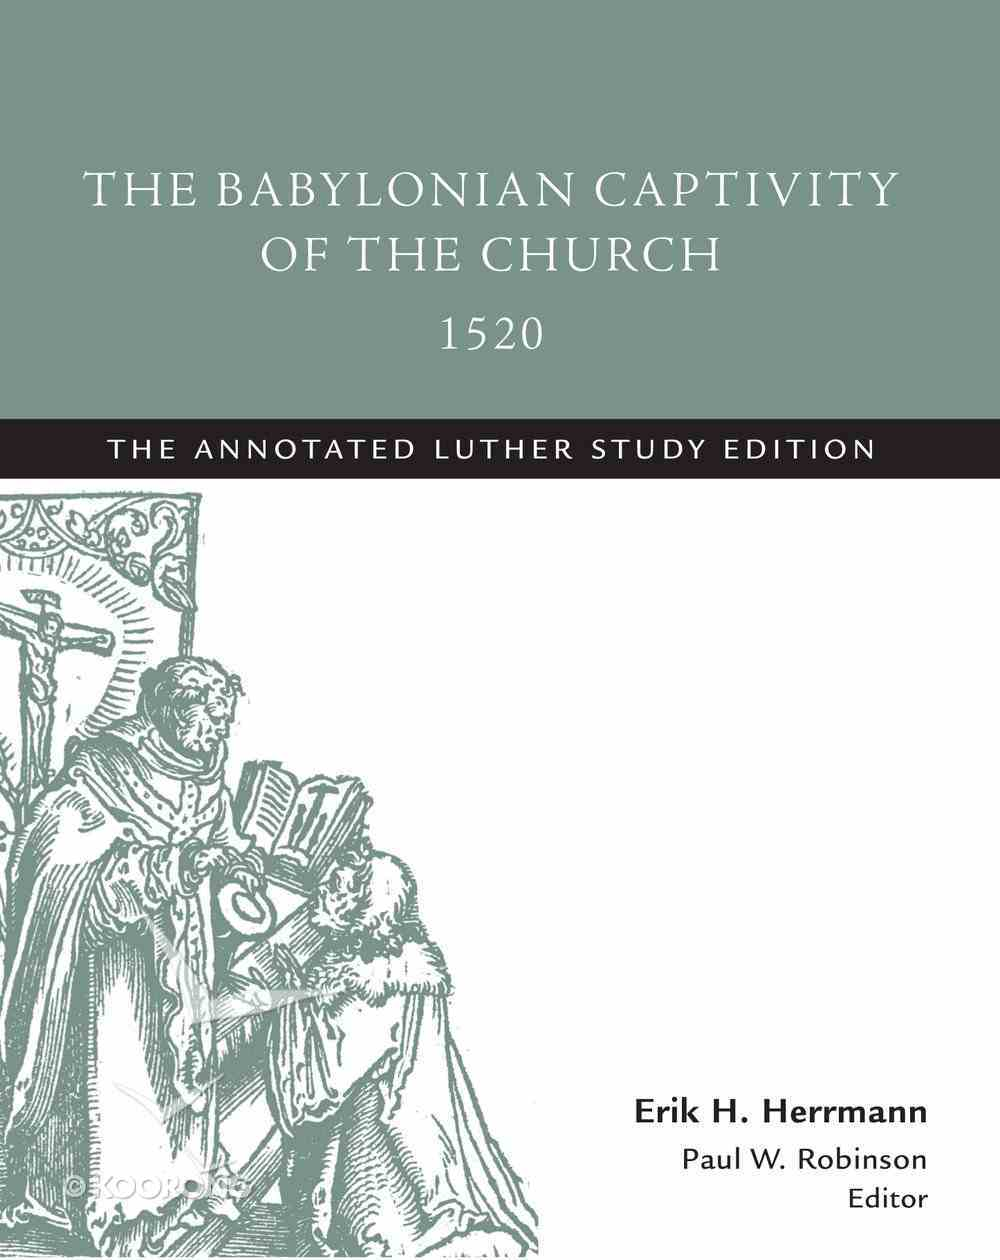 The Babylonian Captivity of the Church, 1520 (The Annotated Luther Series) eBook